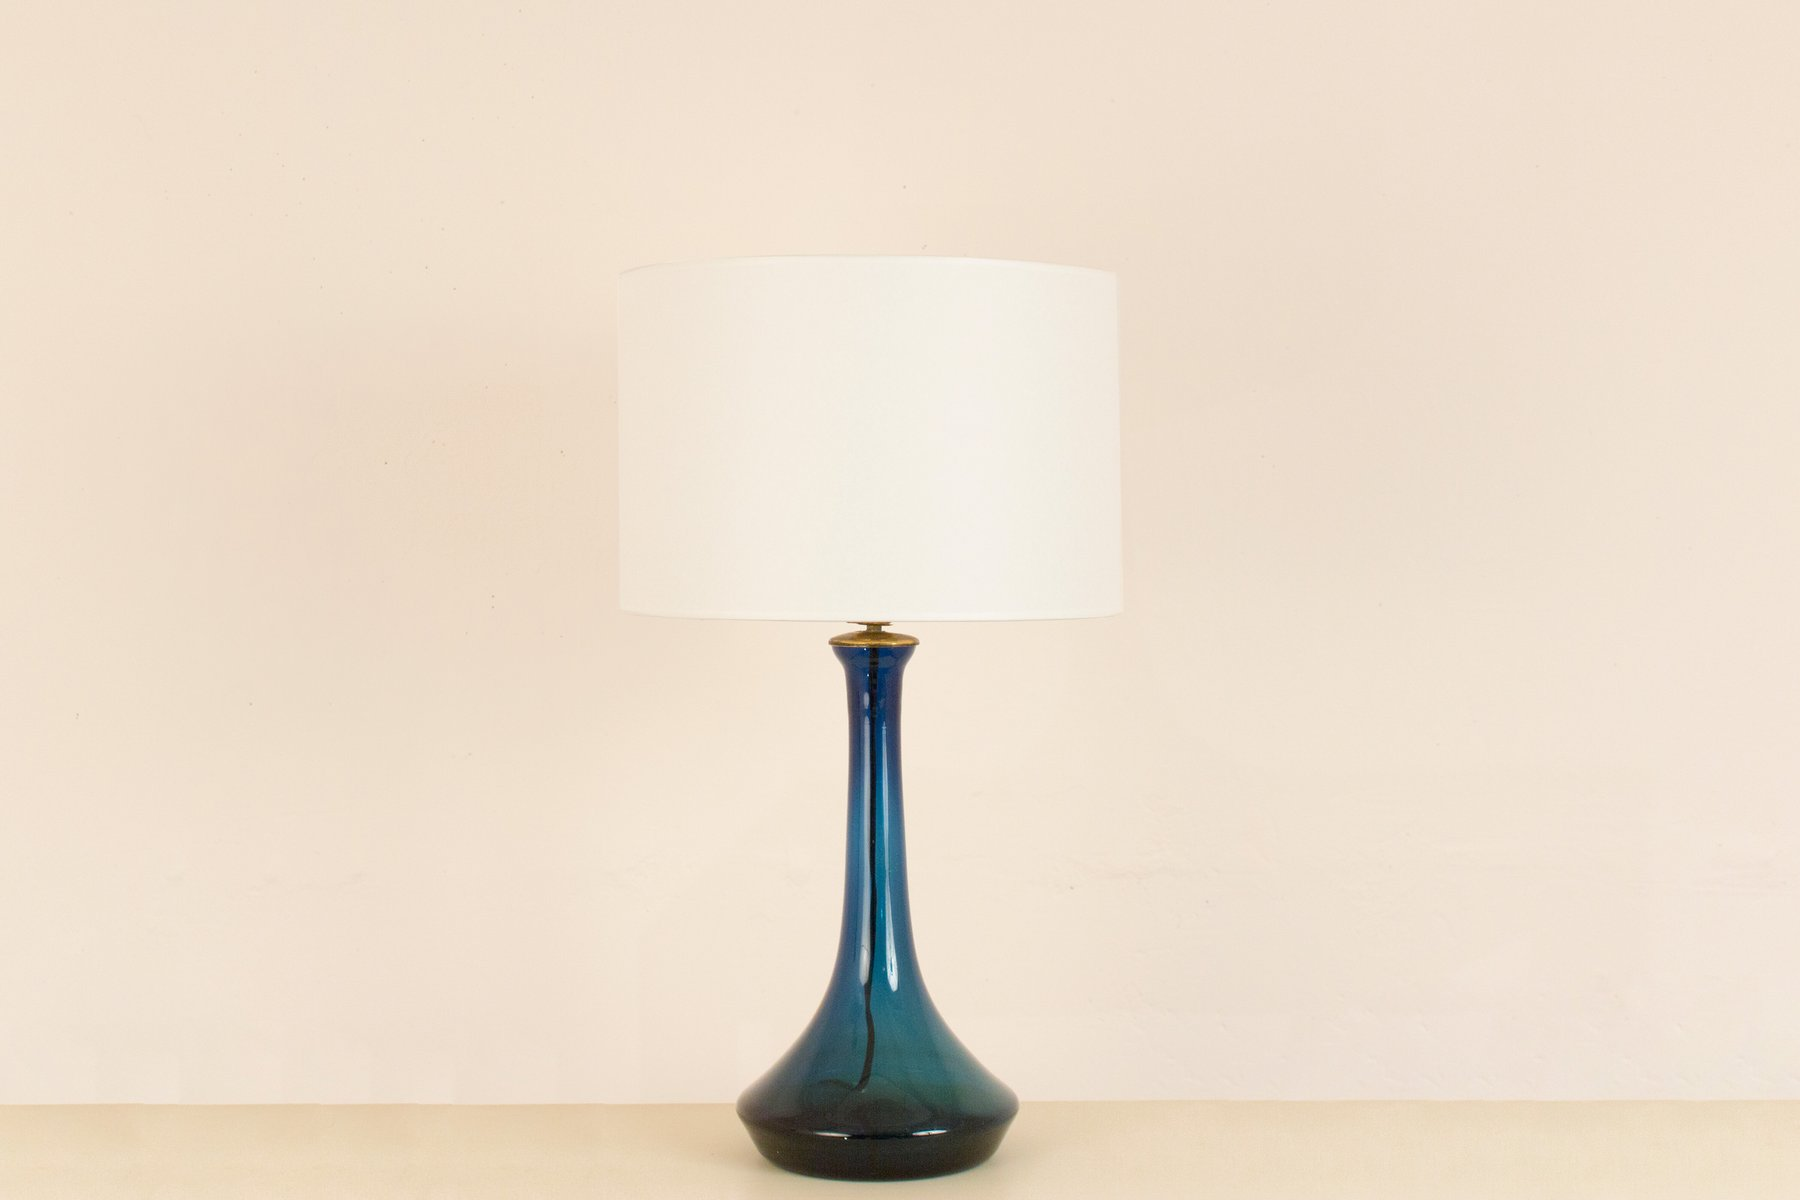 Mid century danish blown glass table lamp by lisbeth brams for fog mid century danish blown glass table lamp by lisbeth brams for fog and mrup 1966 mozeypictures Choice Image